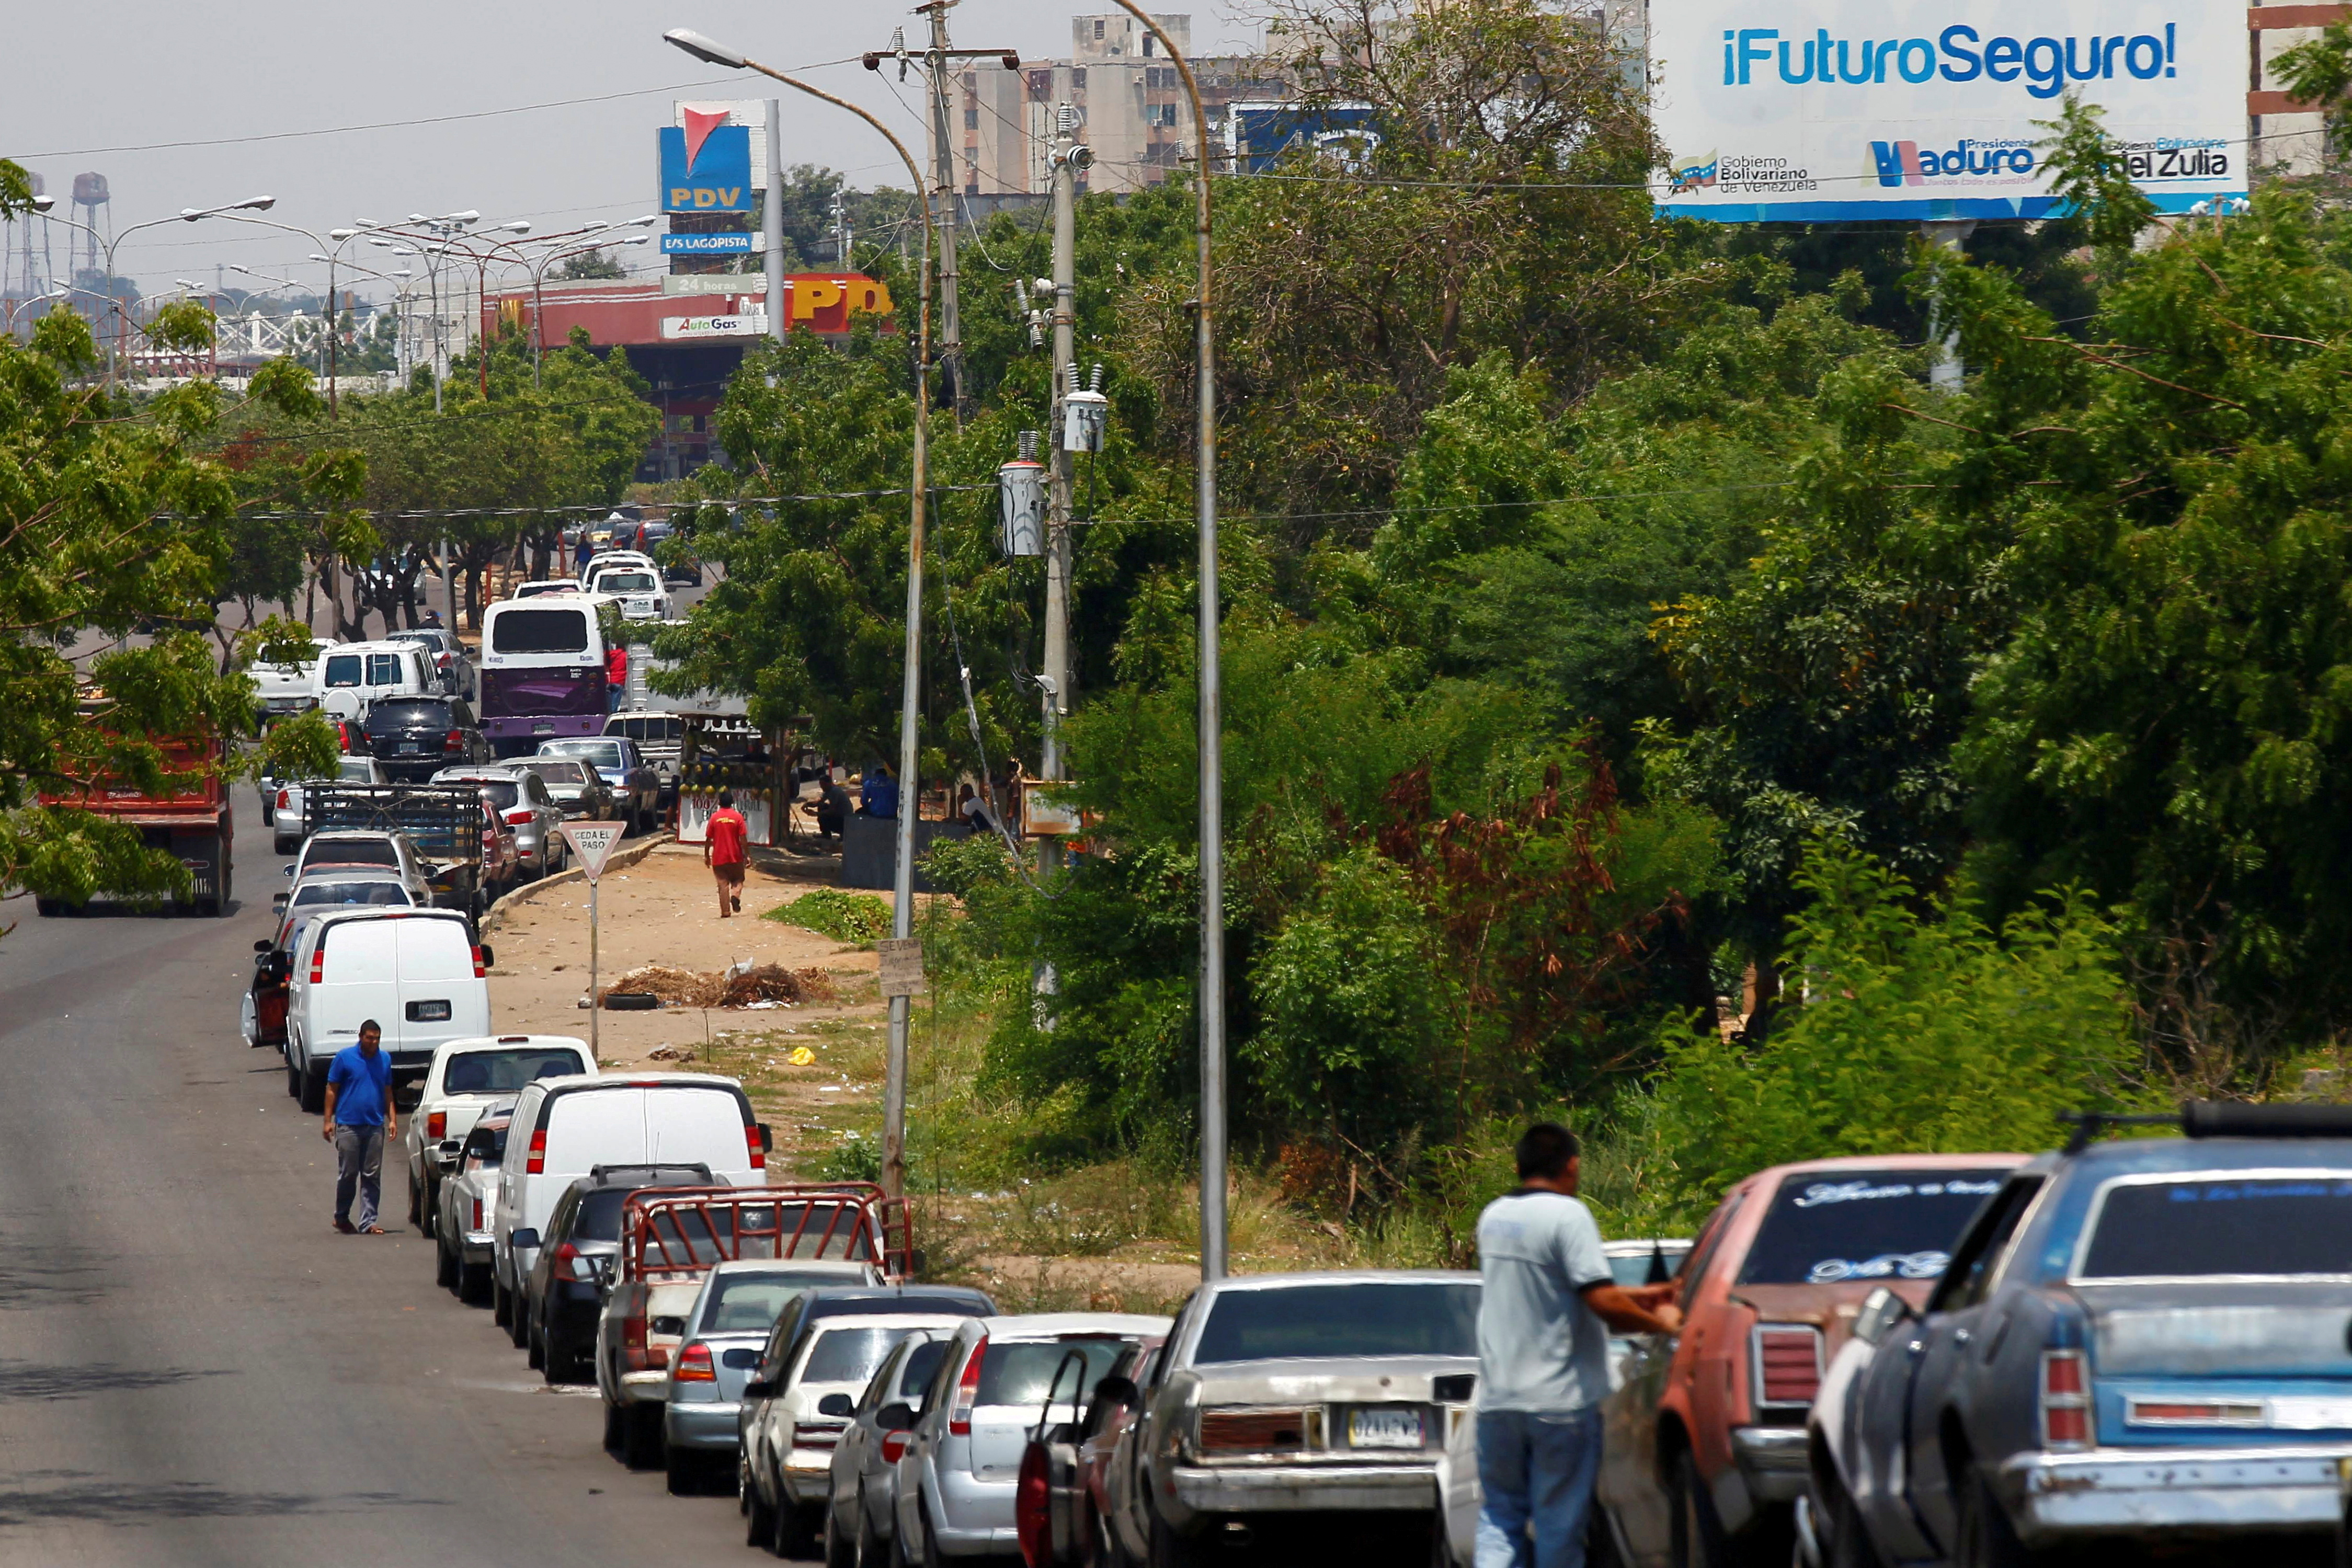 People with vehicles wait in line in an attempt to refuel at a gas station of the state oil company PDVSA in Maracaibo, Venezuela, May 17, 2019. REUTERS/Isaac Urrutia/File Photo